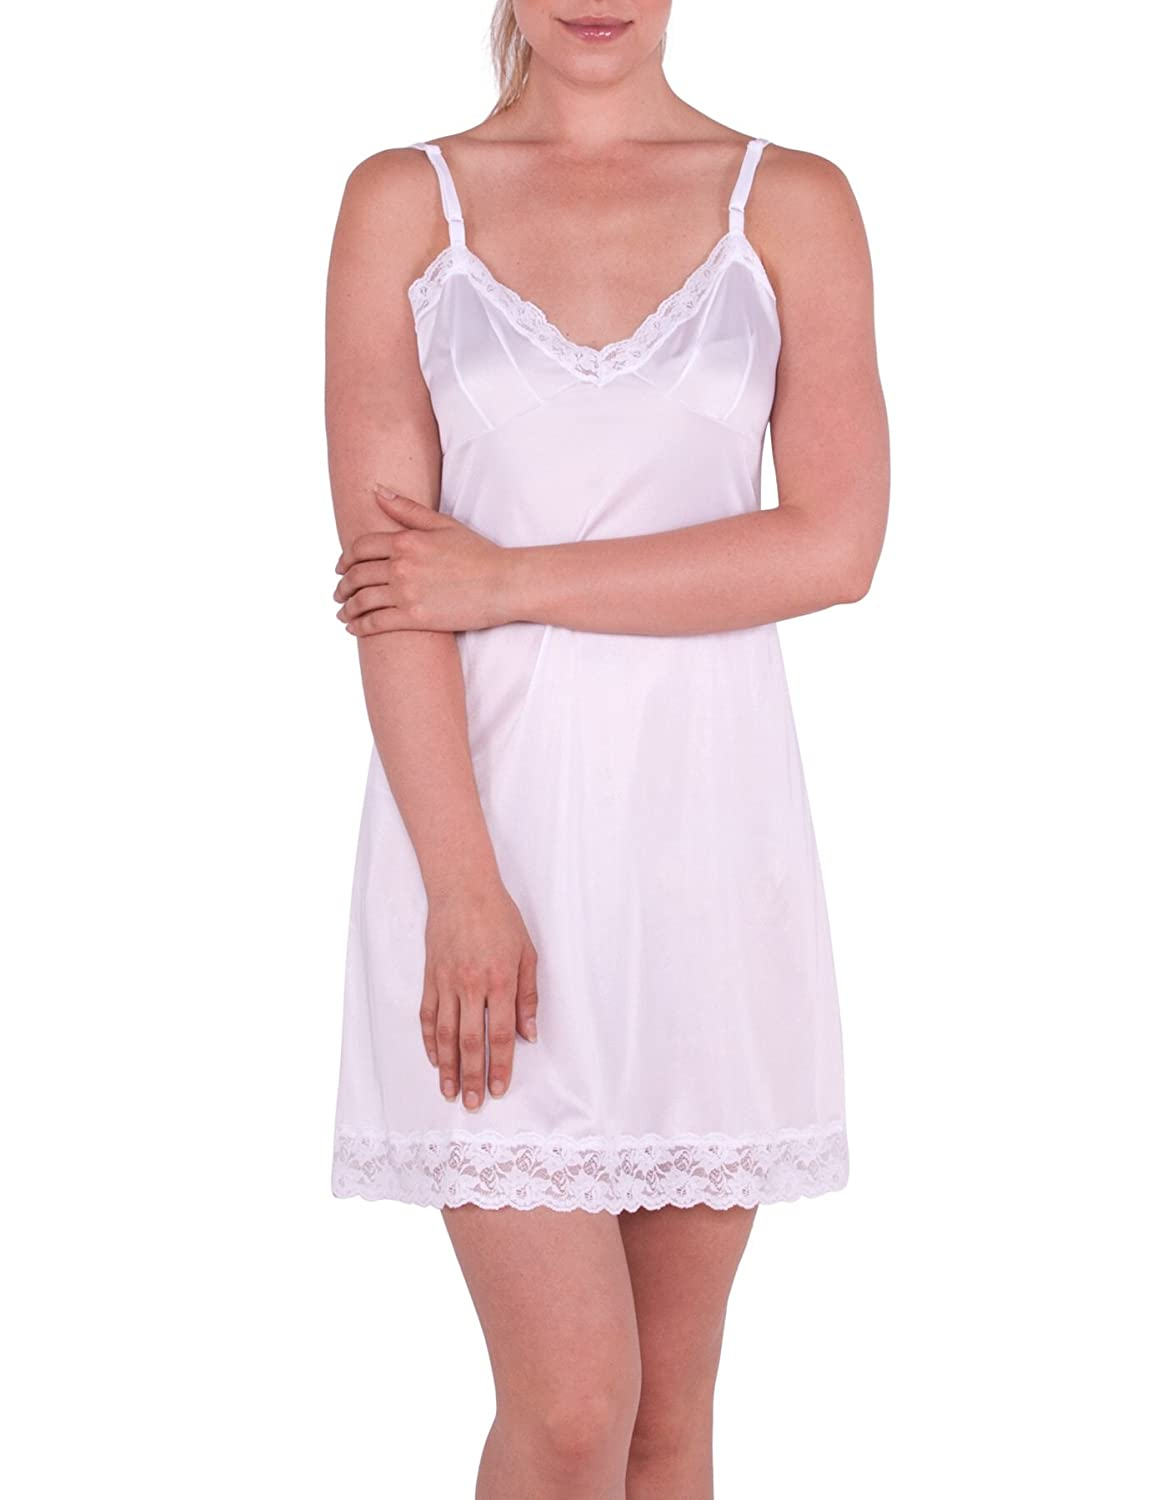 Under Moments Daywear 31 Adjustable Strap Lace Full Slip (52019) UM-52019